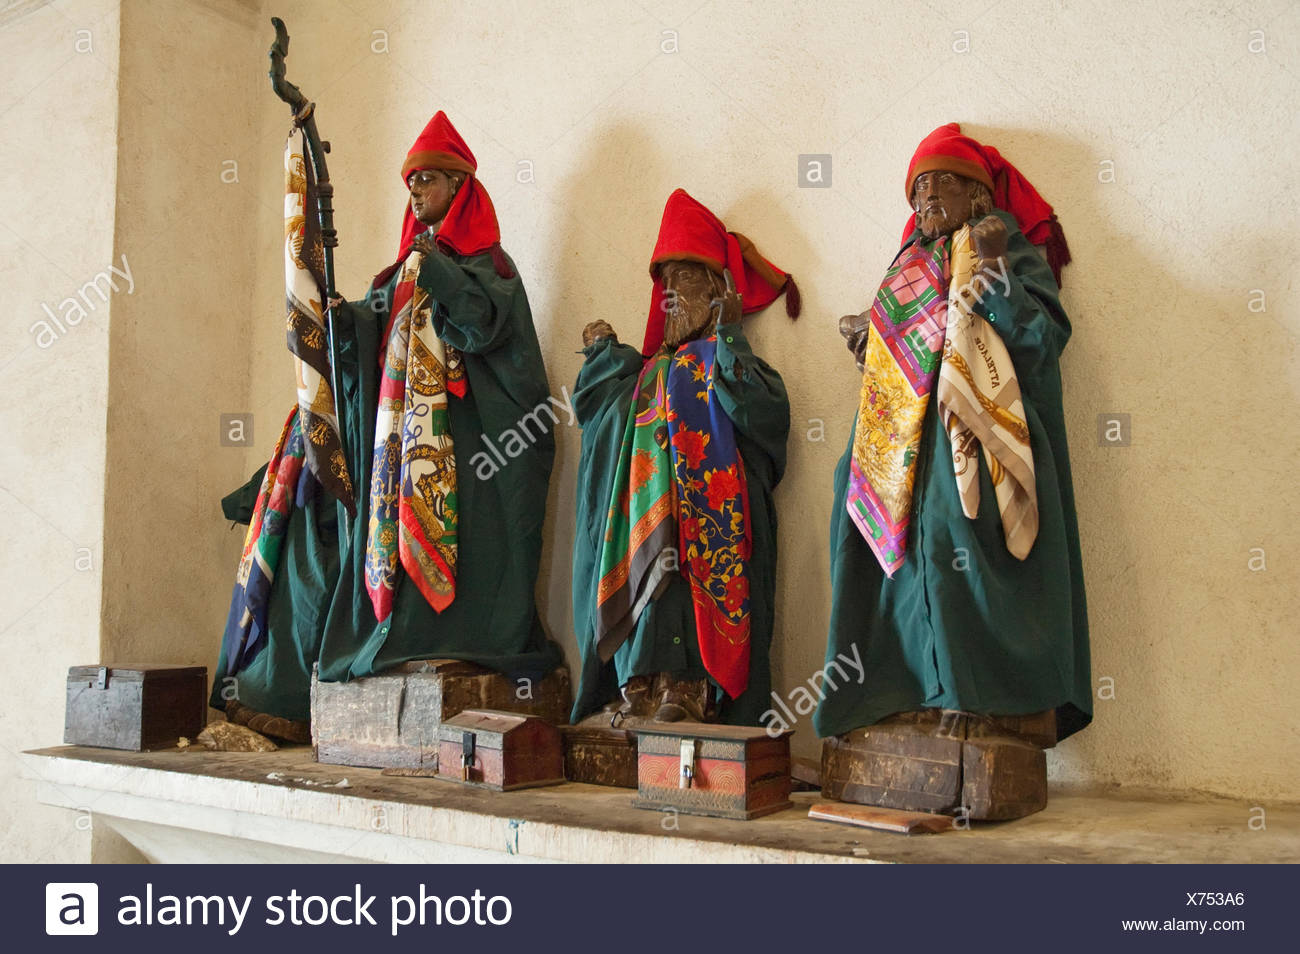 The Dressed Statues Of The Saints In The Santiago Ap - Stock Image